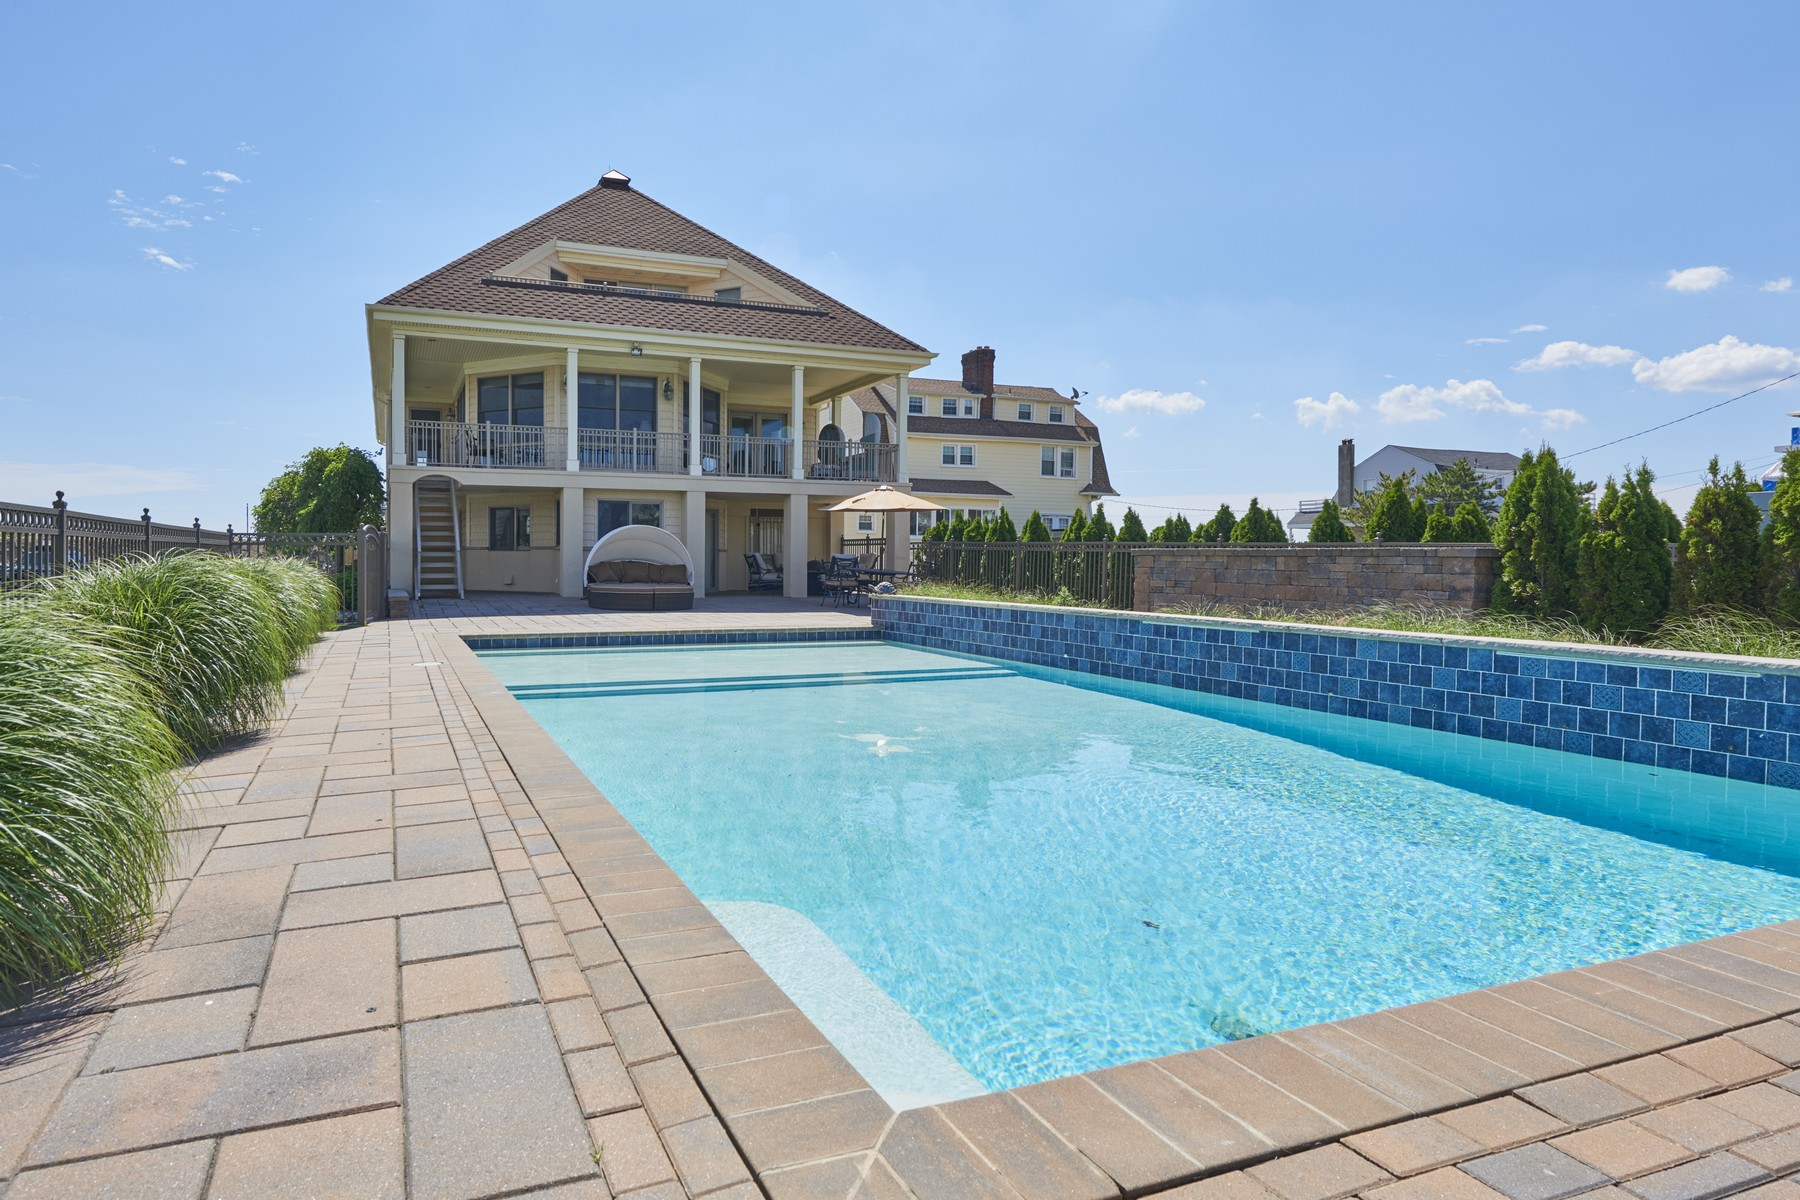 獨棟家庭住宅 為 出售 在 Beautiful Waterfront Property 138 Ocean Ave Monmouth Beach, 新澤西州, 07750 美國